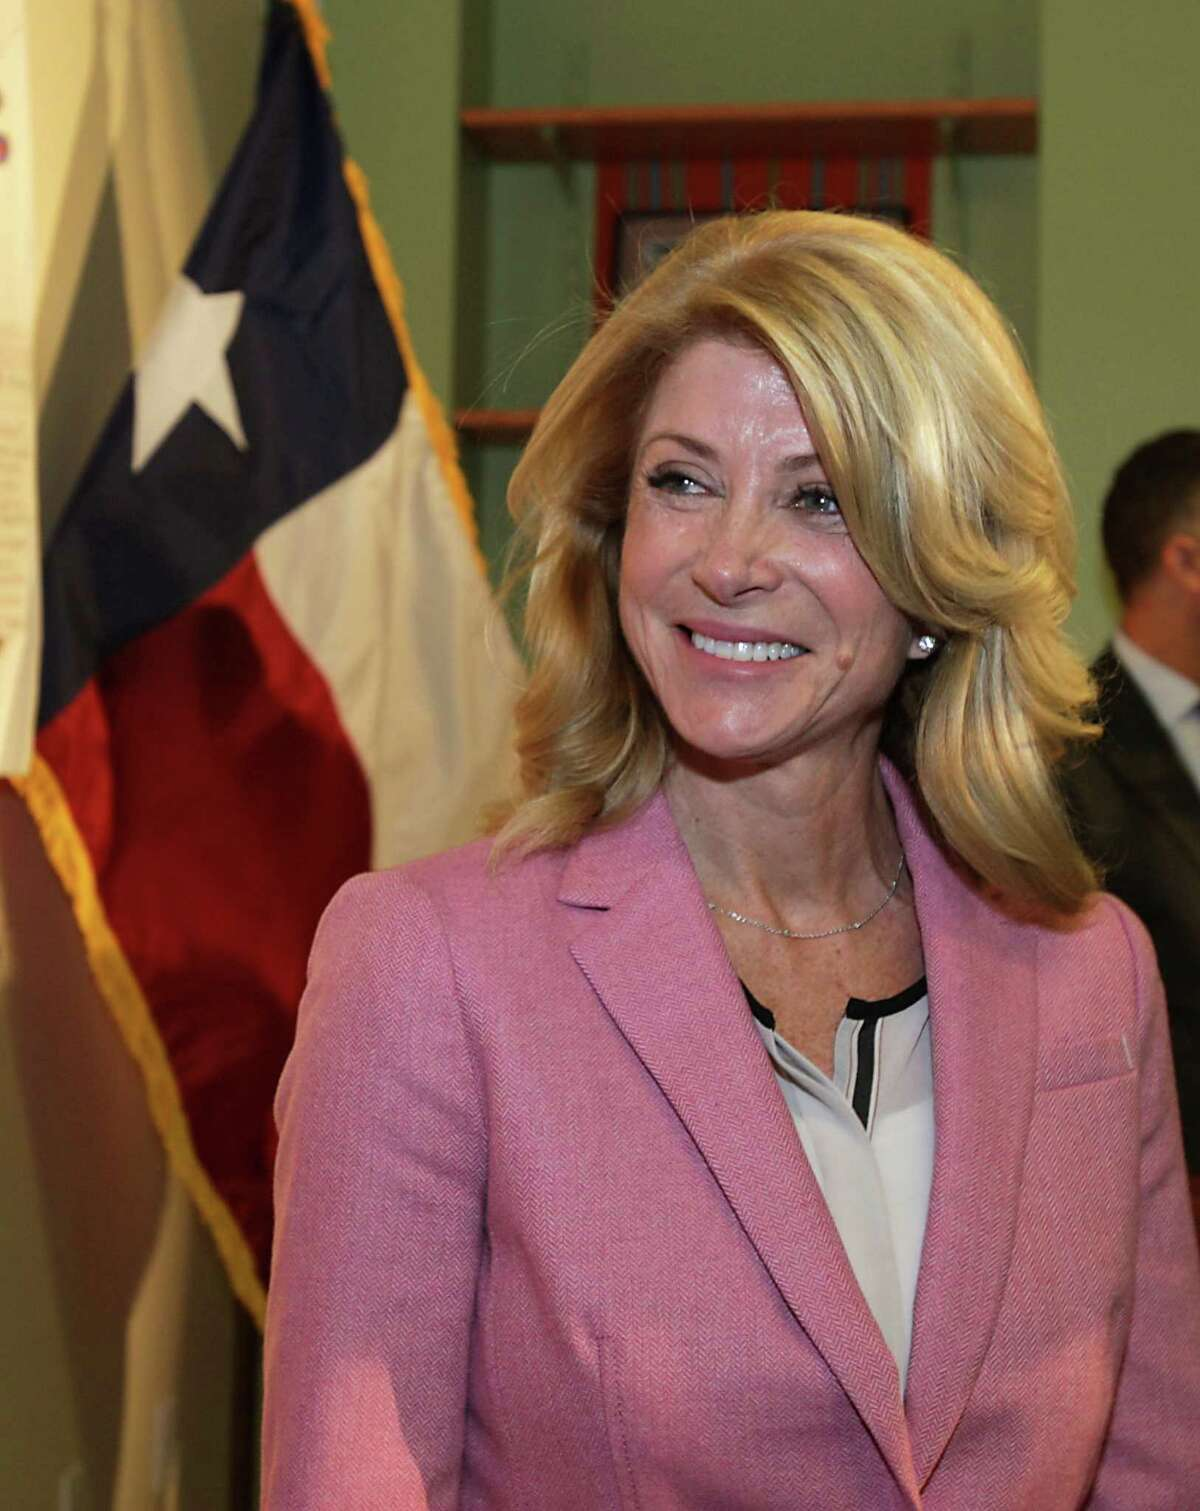 Texas State Senator and gubernatorial candidate Wendy Davis during after her speech Great Schools: Great State at the Baker-Ripley Neighborhood Center Wednesday, Feb. 12, 2014, in Houston. ( James Nielsen / Houston Chronicle )